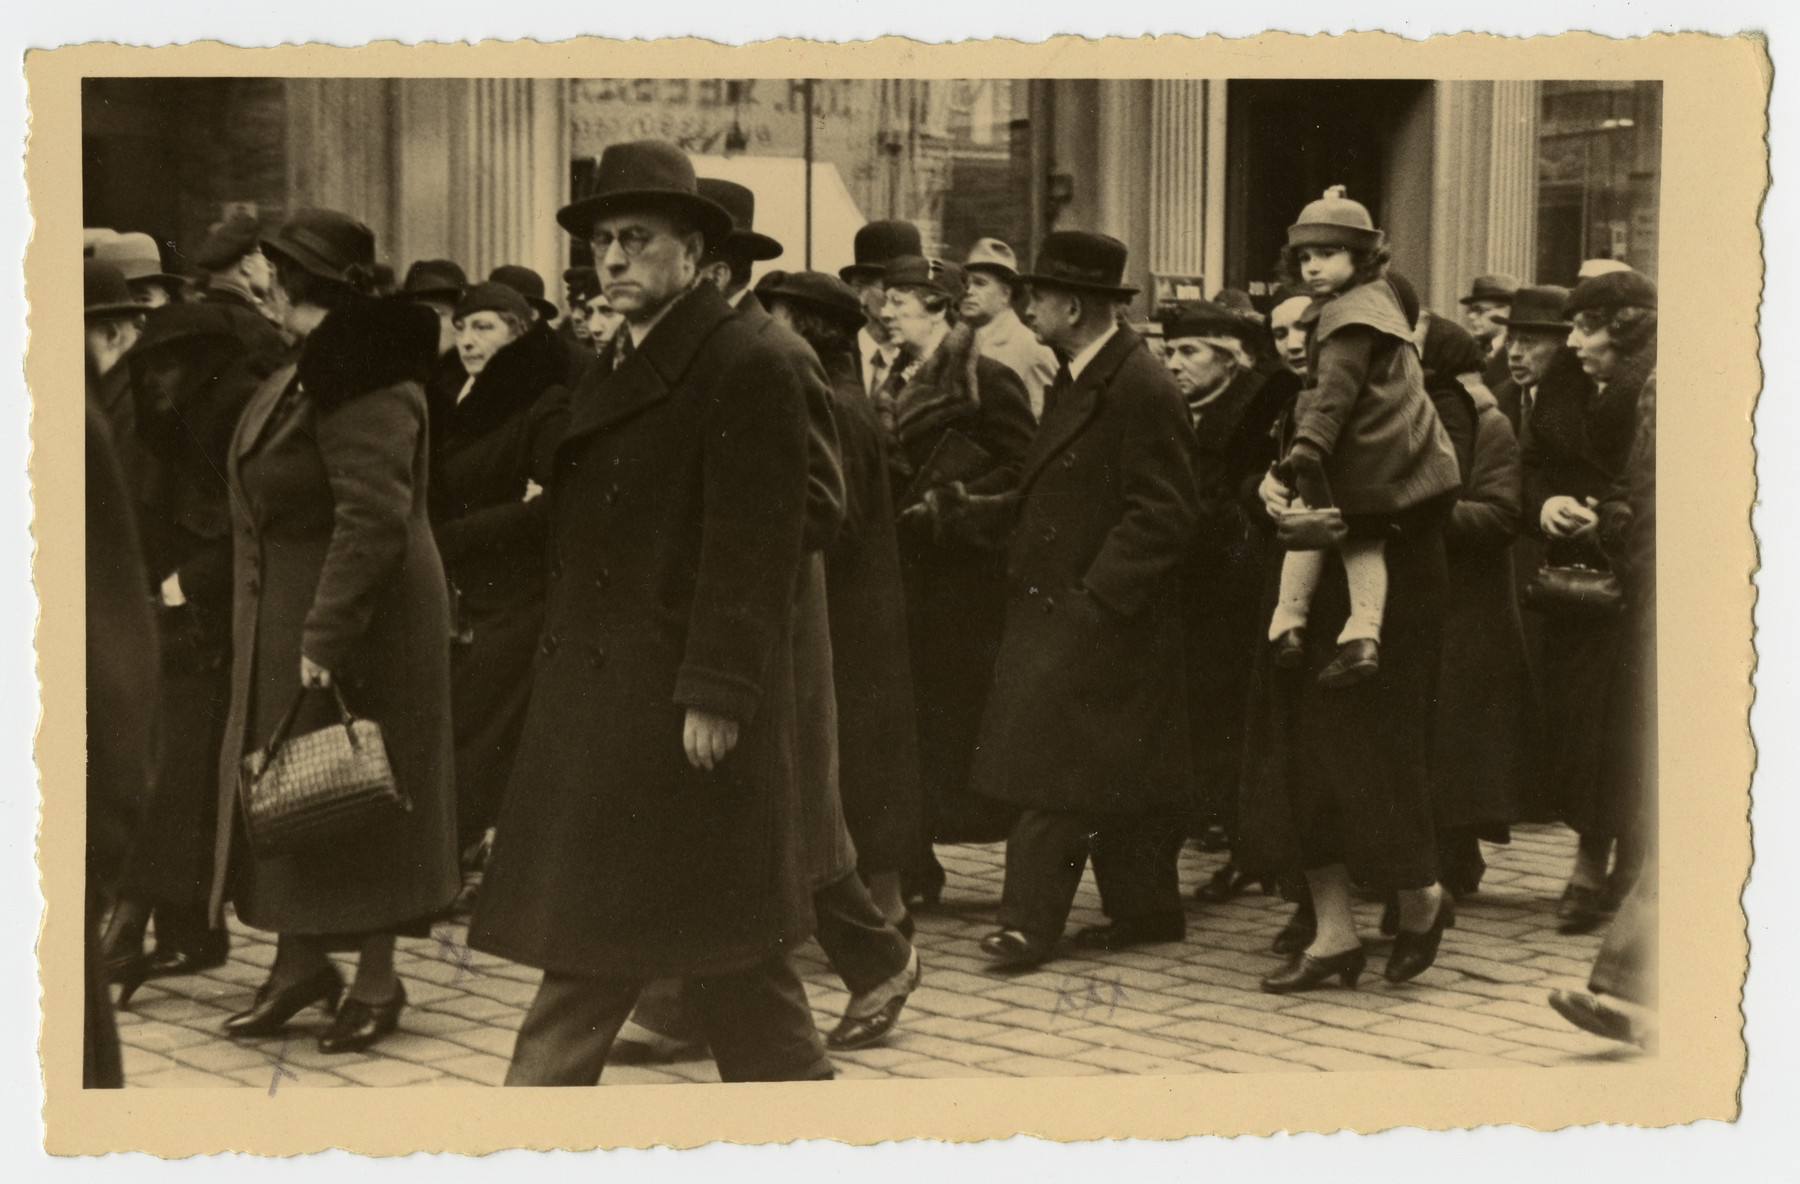 Mourners march down a street of Riga during  the funeral procession for Freida Albin.  Among those pictured are Aunt Zilla (wife of Uncle Aron); Aunt Berta Opapa; Aunt Zerna, behind her Bronja's head, and Mr. Mahler.